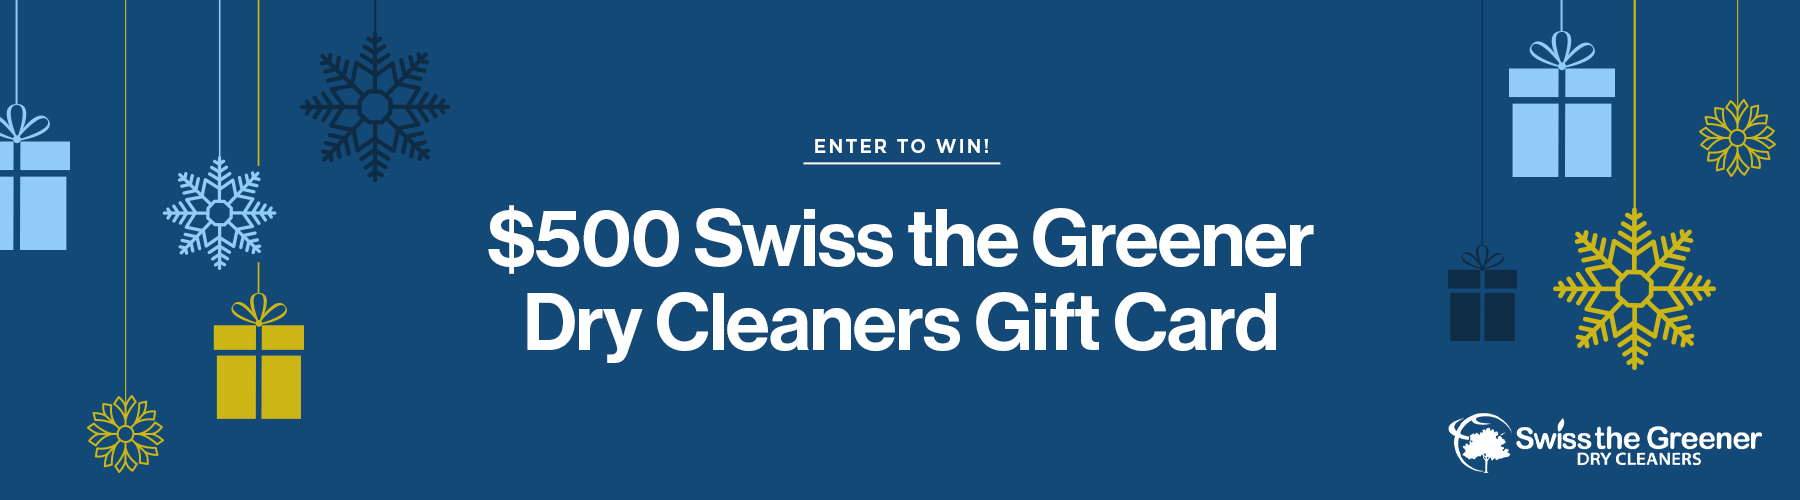 2020 Holiday Giveaways Swiss